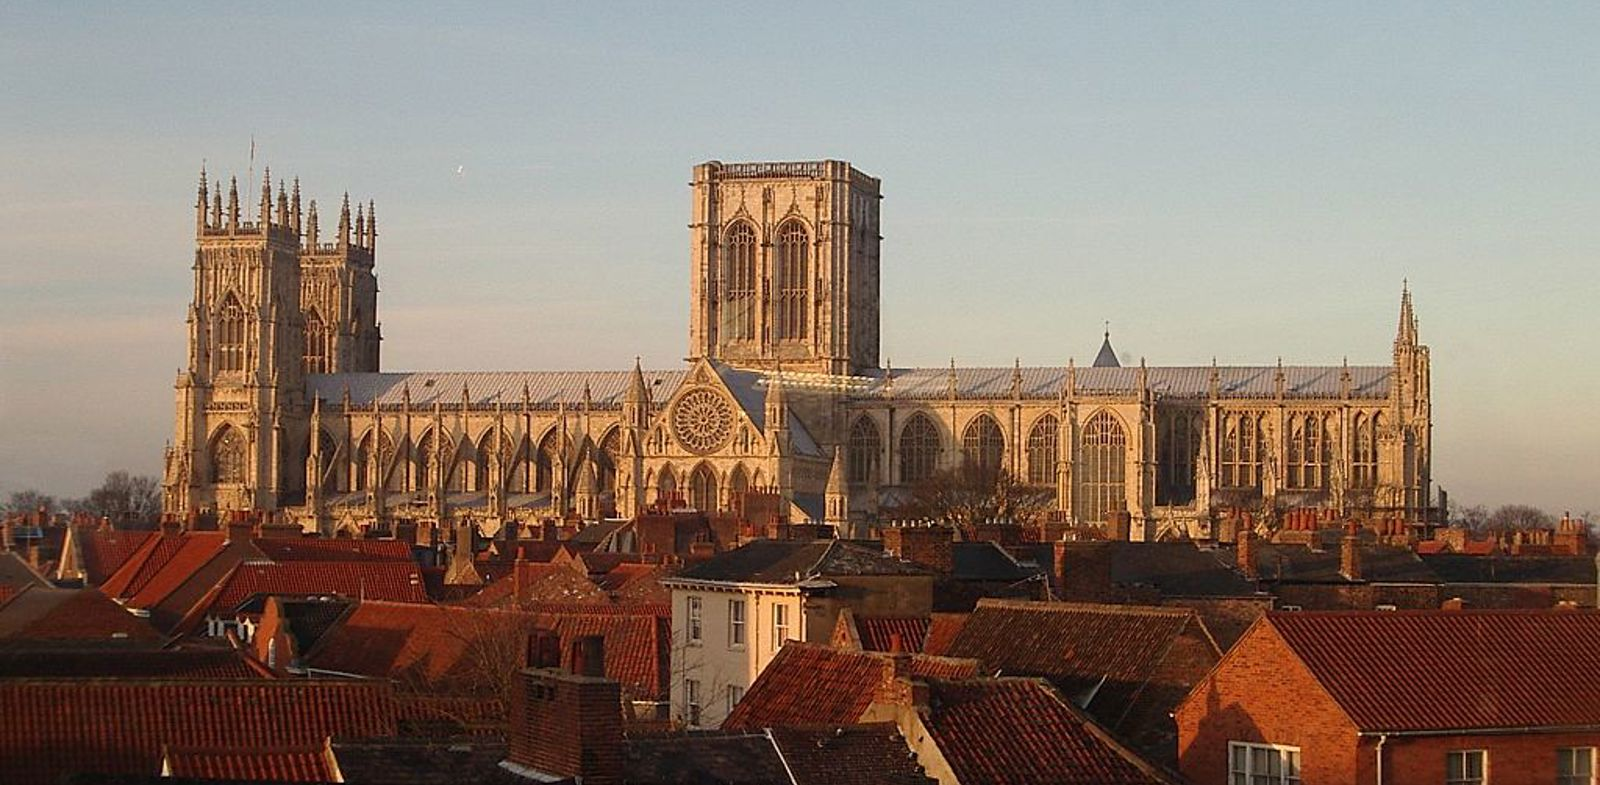 https://en.wikipedia.org/wiki/File:York_Minster_from_M%26S.JPG#file